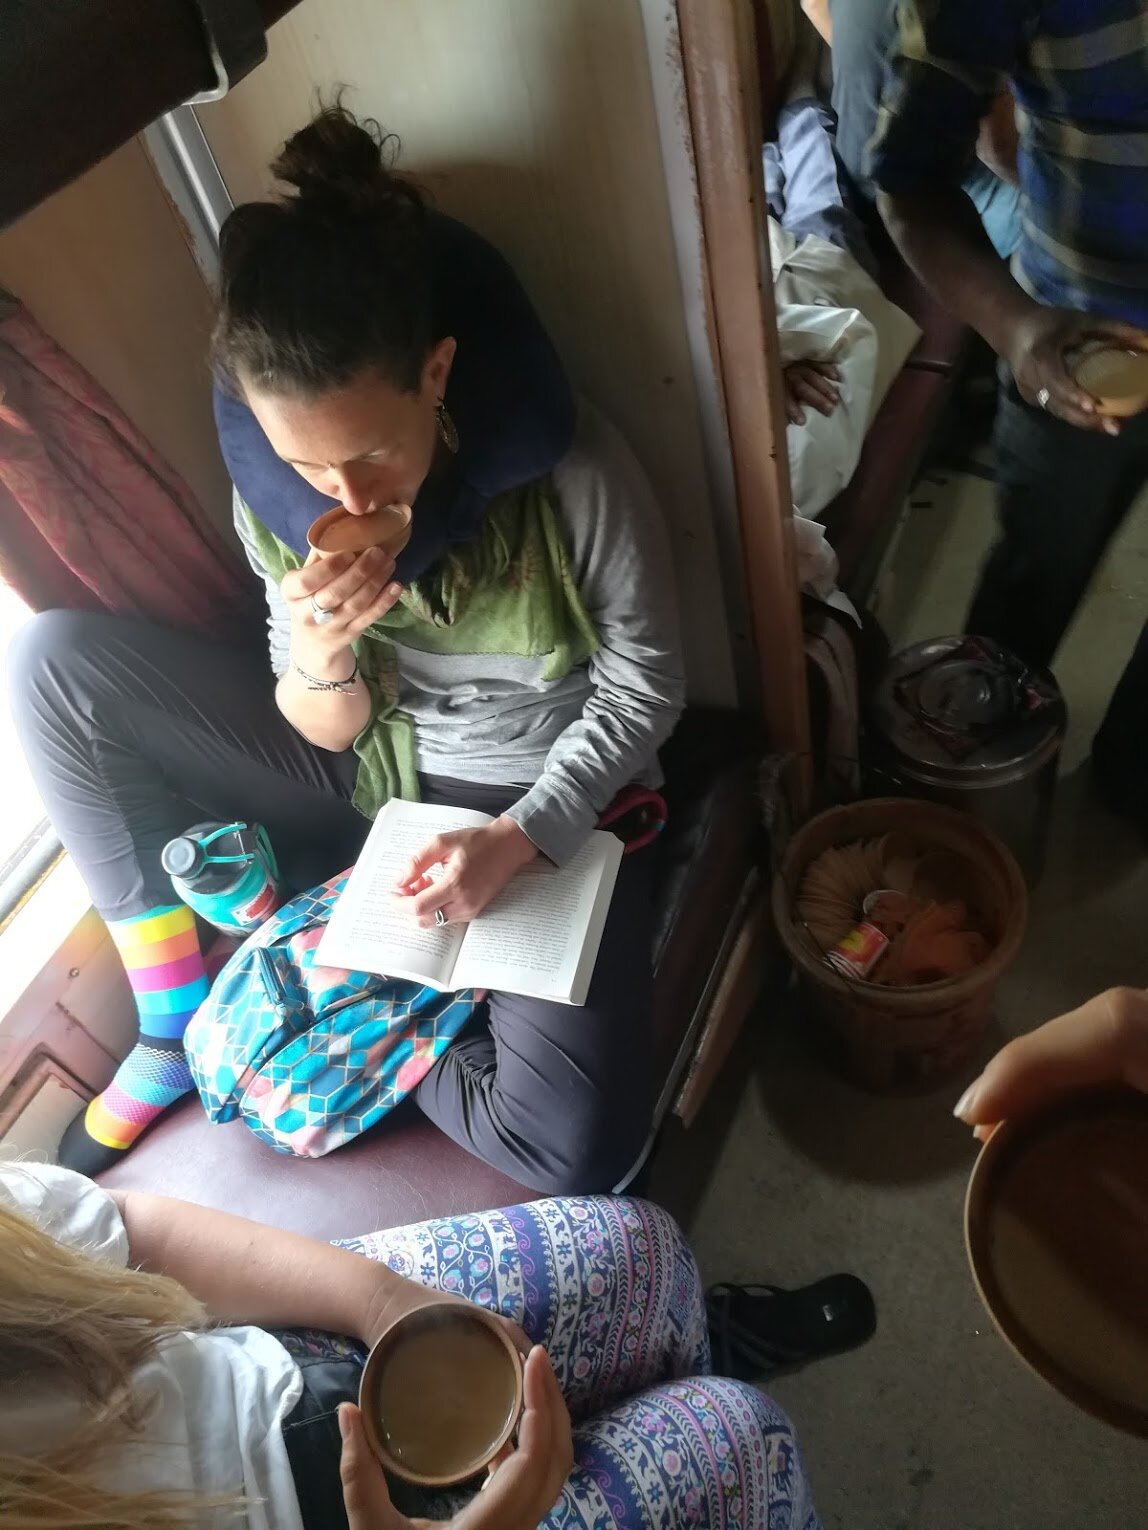 Drinking chai on a train in India, because sometimes the chaos is so loud we need a silent escape.